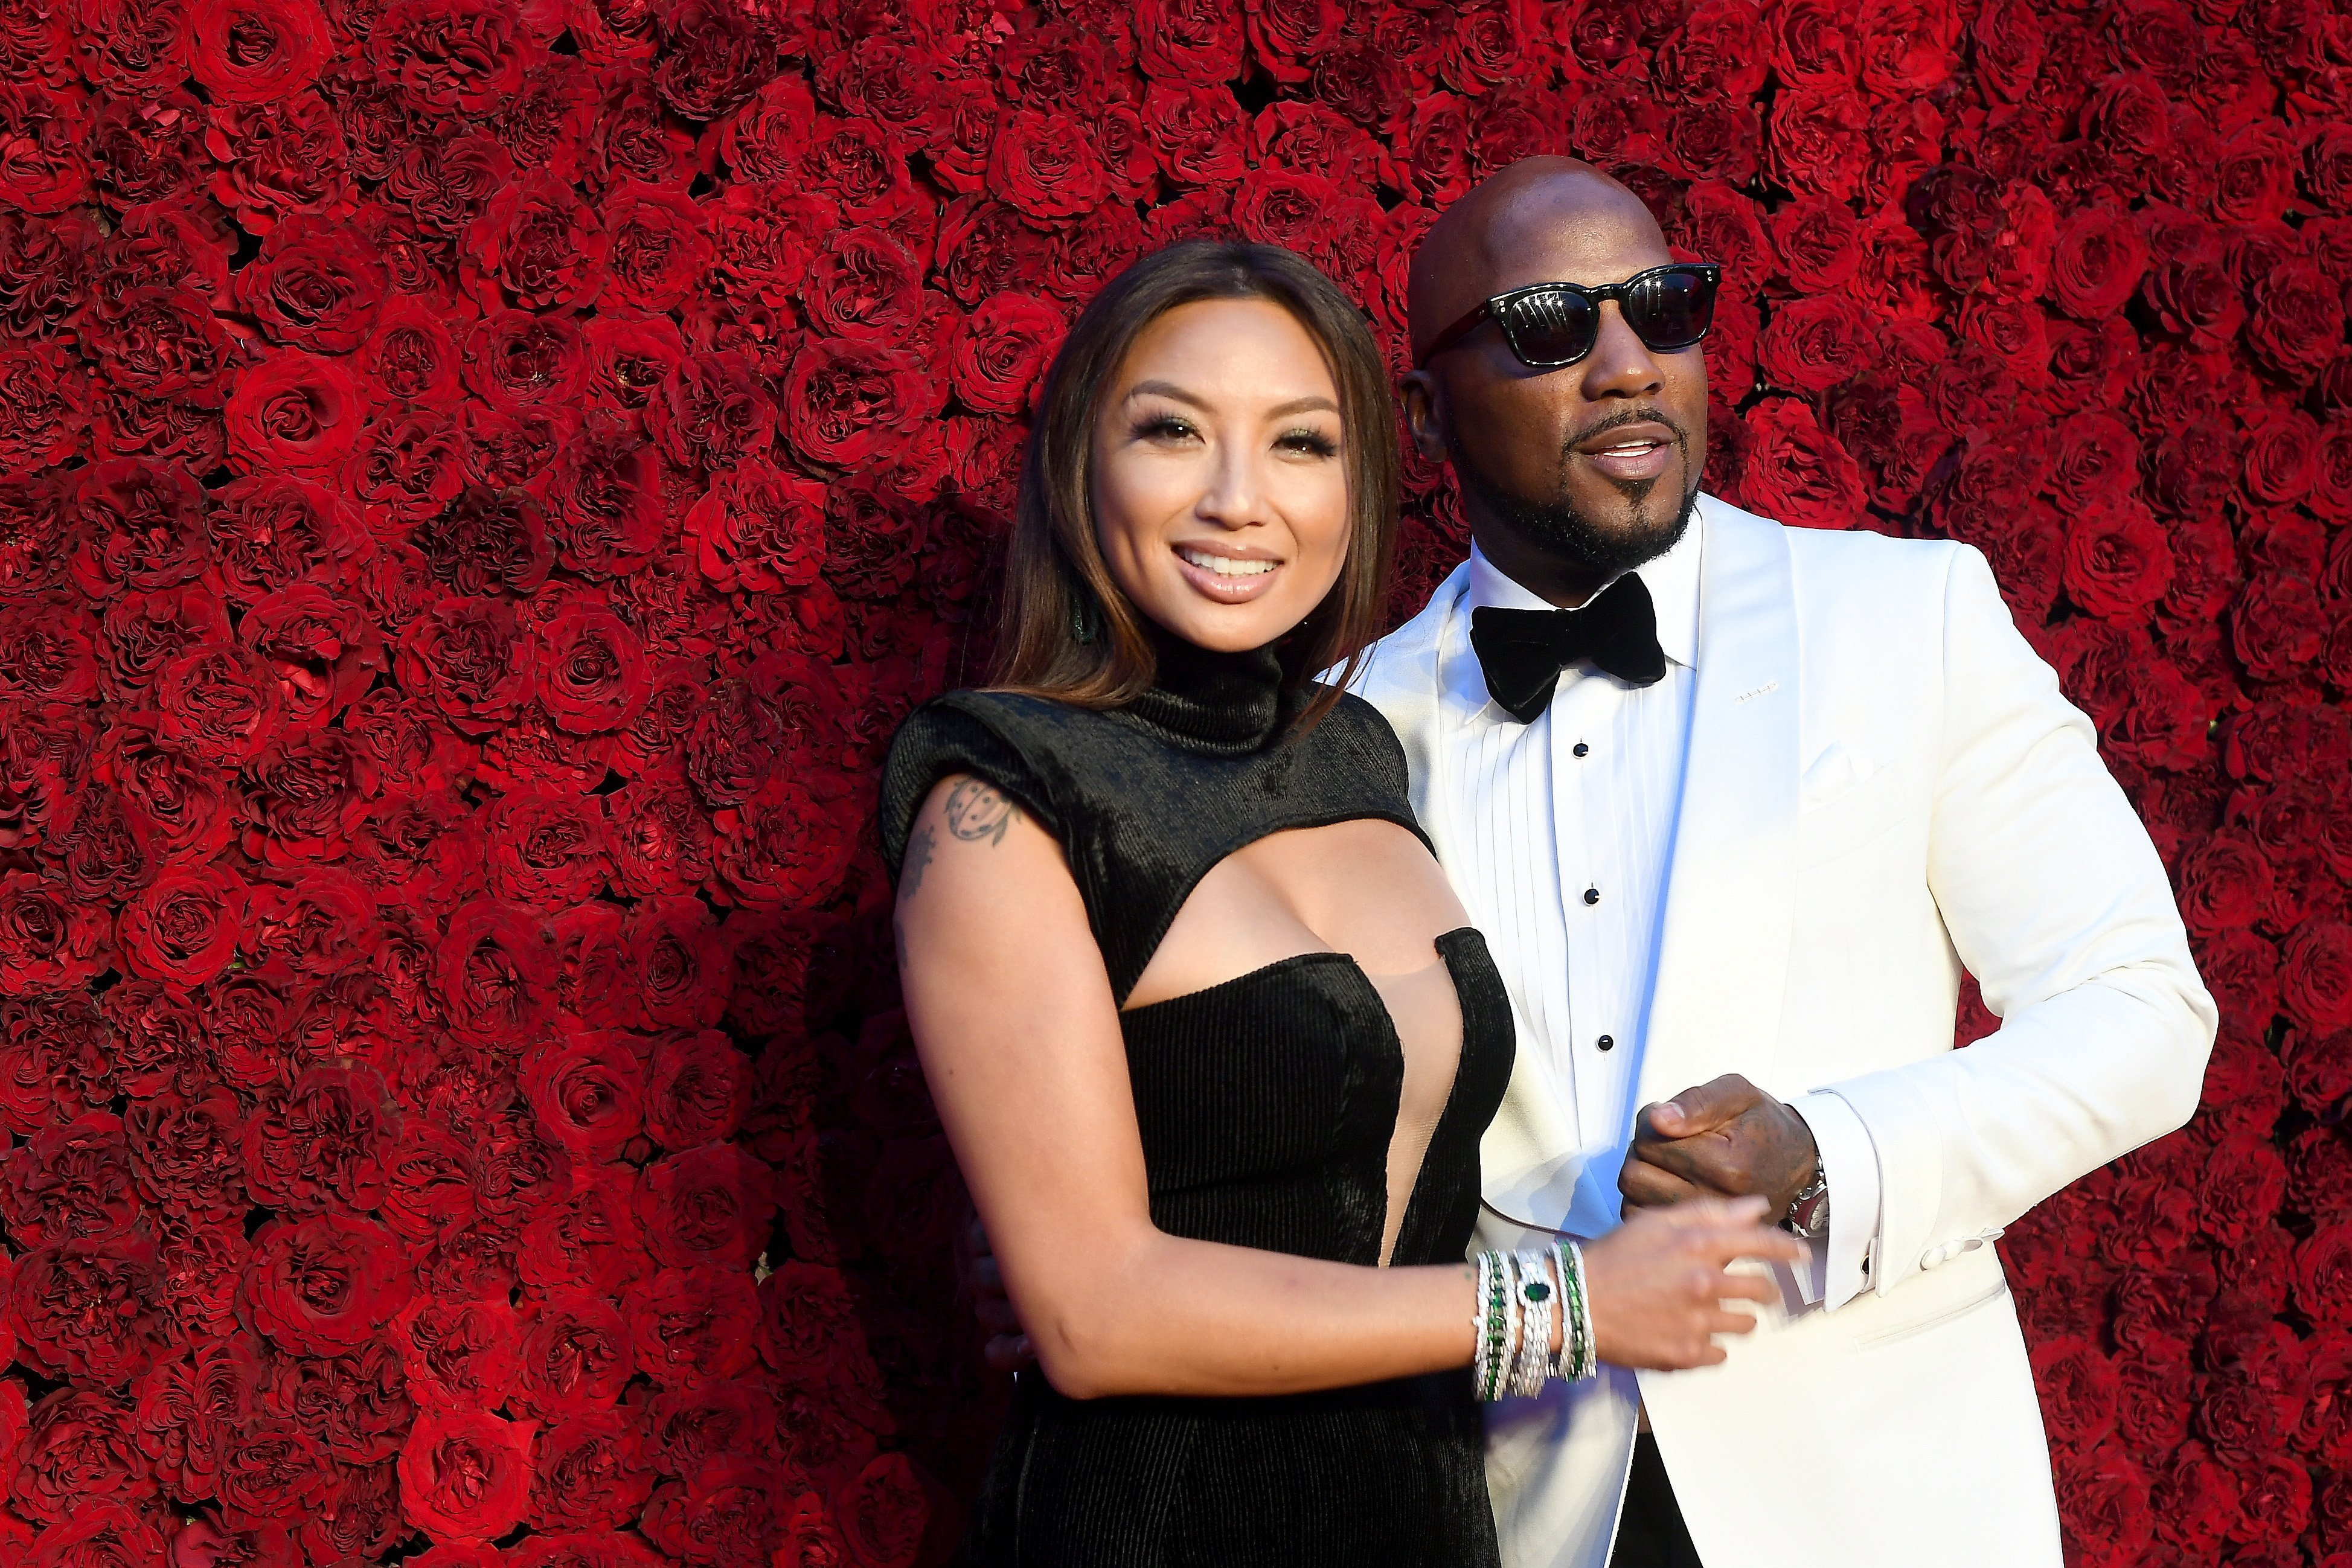 Jeannie Mai and boyfriend, Jeezy at the red carpet during the grand opening of TYler Perry Studios in October 2019.   Photo: Getty Images